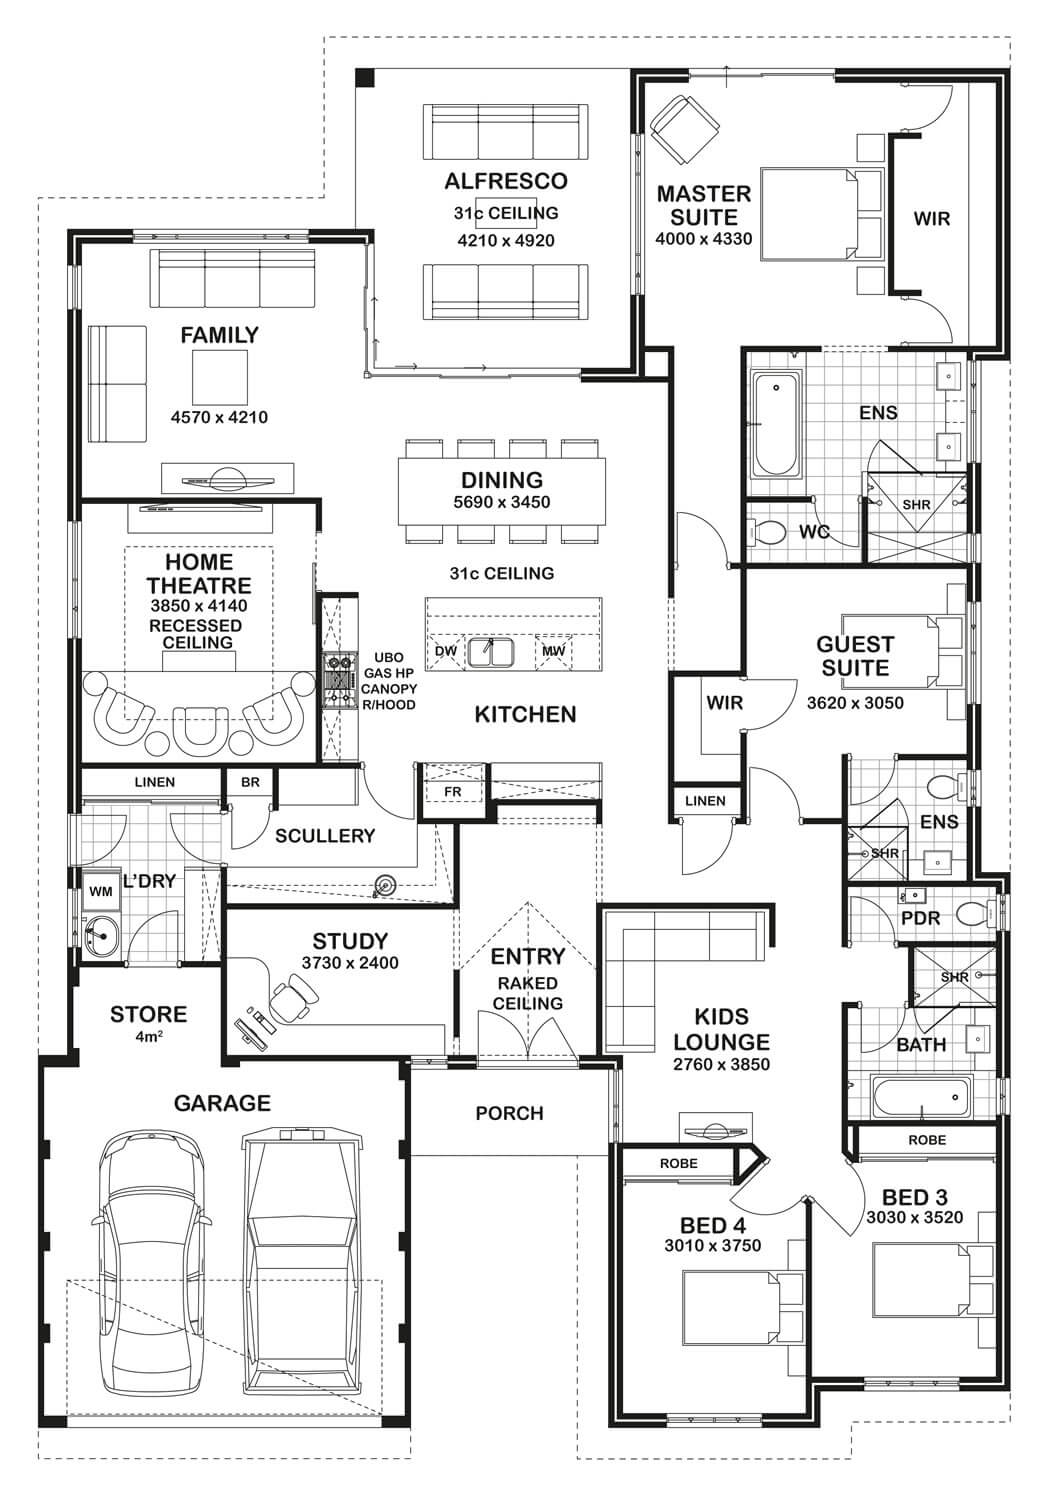 Do It Yourself Home Design: Floor Plan Friday: 4 Bedroom, 3 Bathroom Home